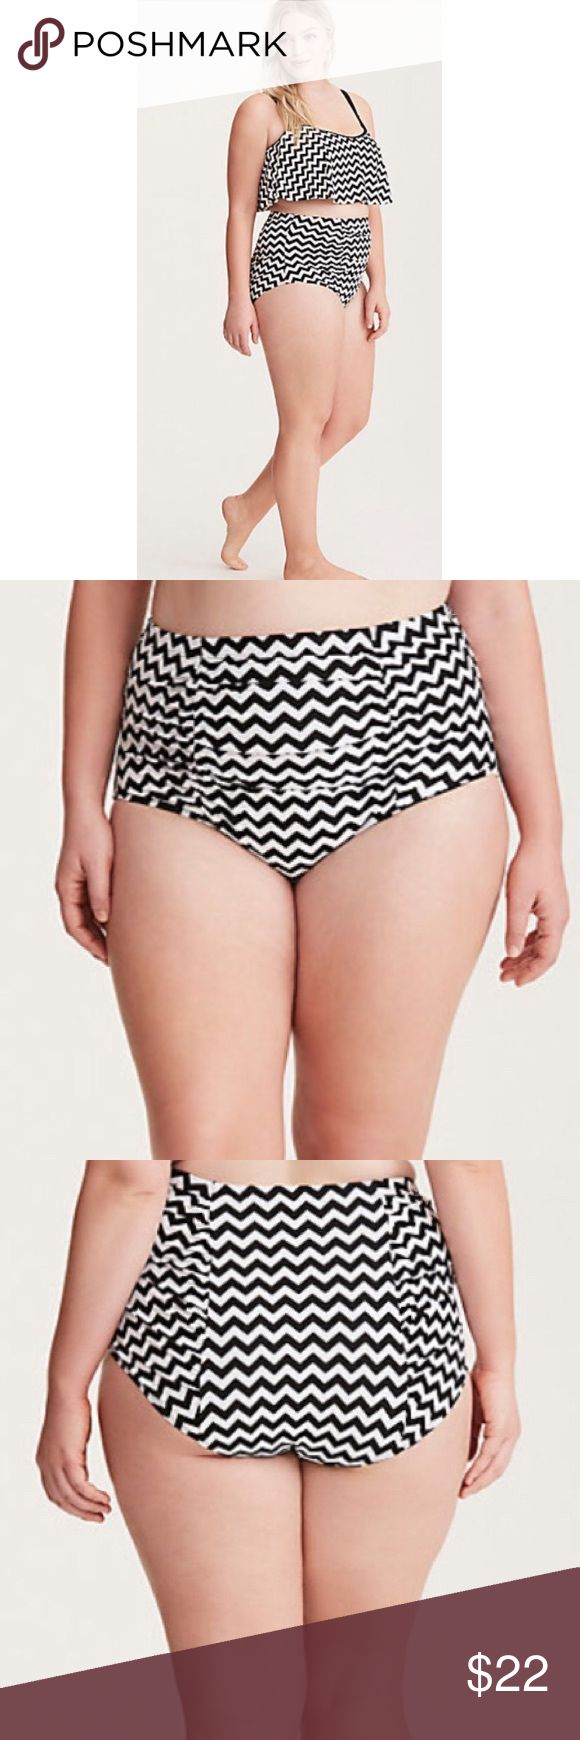 ➕ Torrid chevron high waisted bikini bottoms, 4 4X Brand new with tags, Torrid ruched black & white chevron bikini swimsuit bottoms, size 4 (equivalent to 4X or 26/28). Fully lined with smoothing mesh, slimming silhouette and pattern,  high waisted full coverage. I have an adorable black tie front  top to match! Pair with oversized glasses and floppy hat for designer resort style! torrid Swim Bikinis